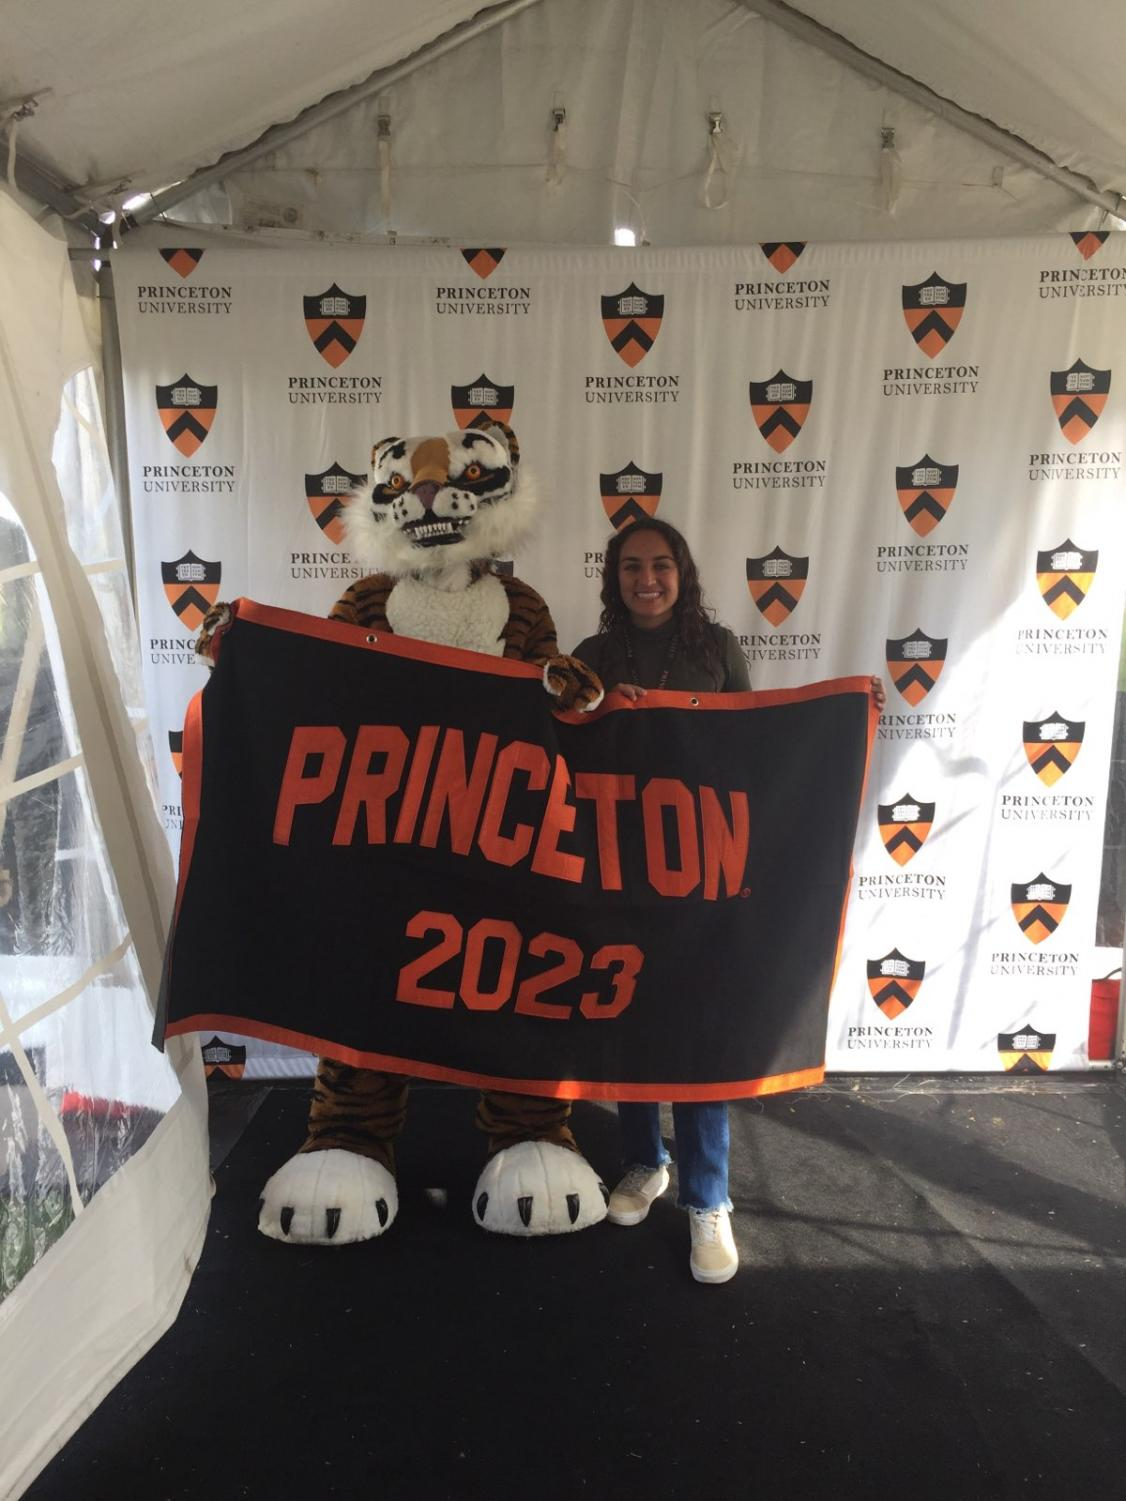 Kulchar poses with the Princeton tiger, holding up a Princeton class of 2023 banner.